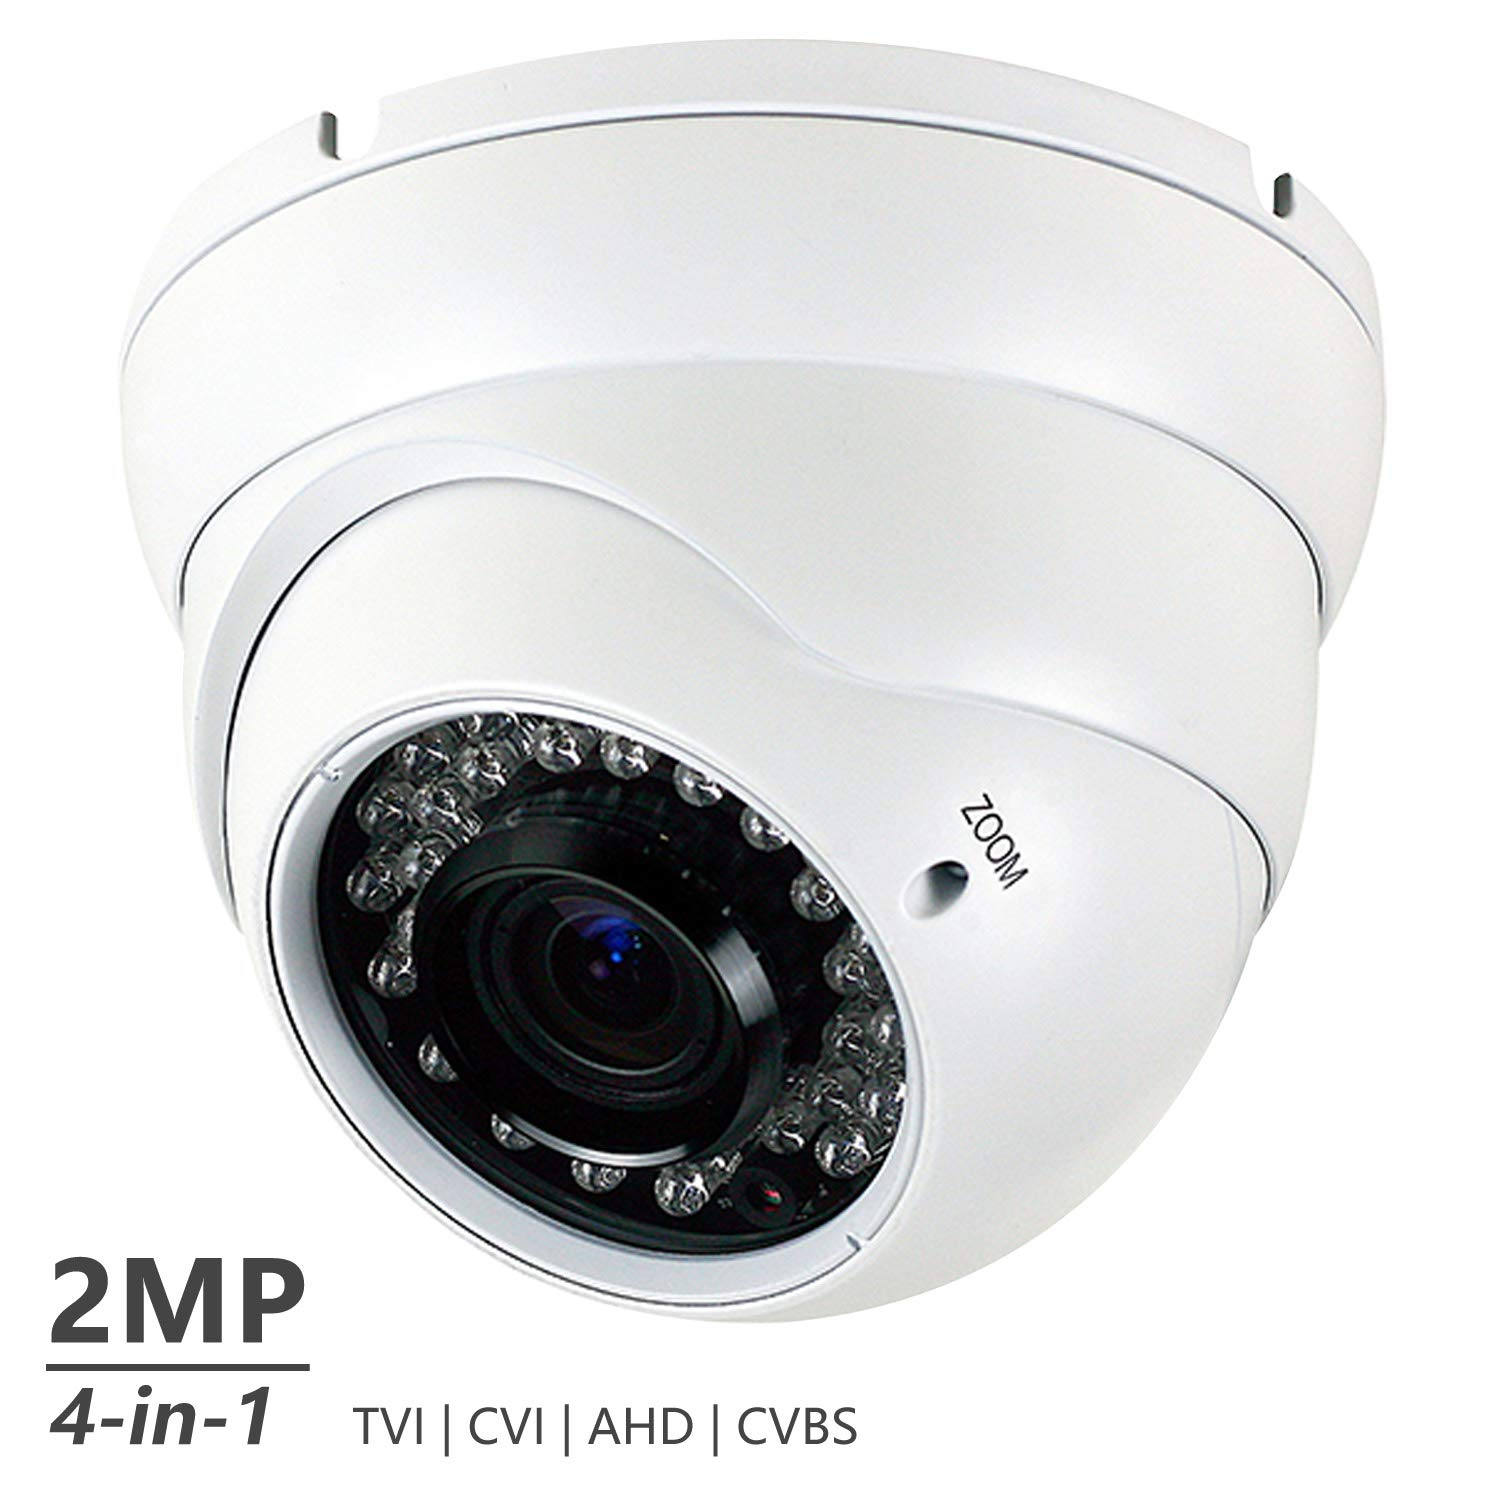 Analog CCTV Camera HD 1080P 4-in-1 TVI AHD CVI CVBS Security Dome Camera, 2.8mm-12mm Manual Focus Zoom Varifocal Lens, Weatherproof Metal Housing 36 IR-LEDs Day Night Monitoring White